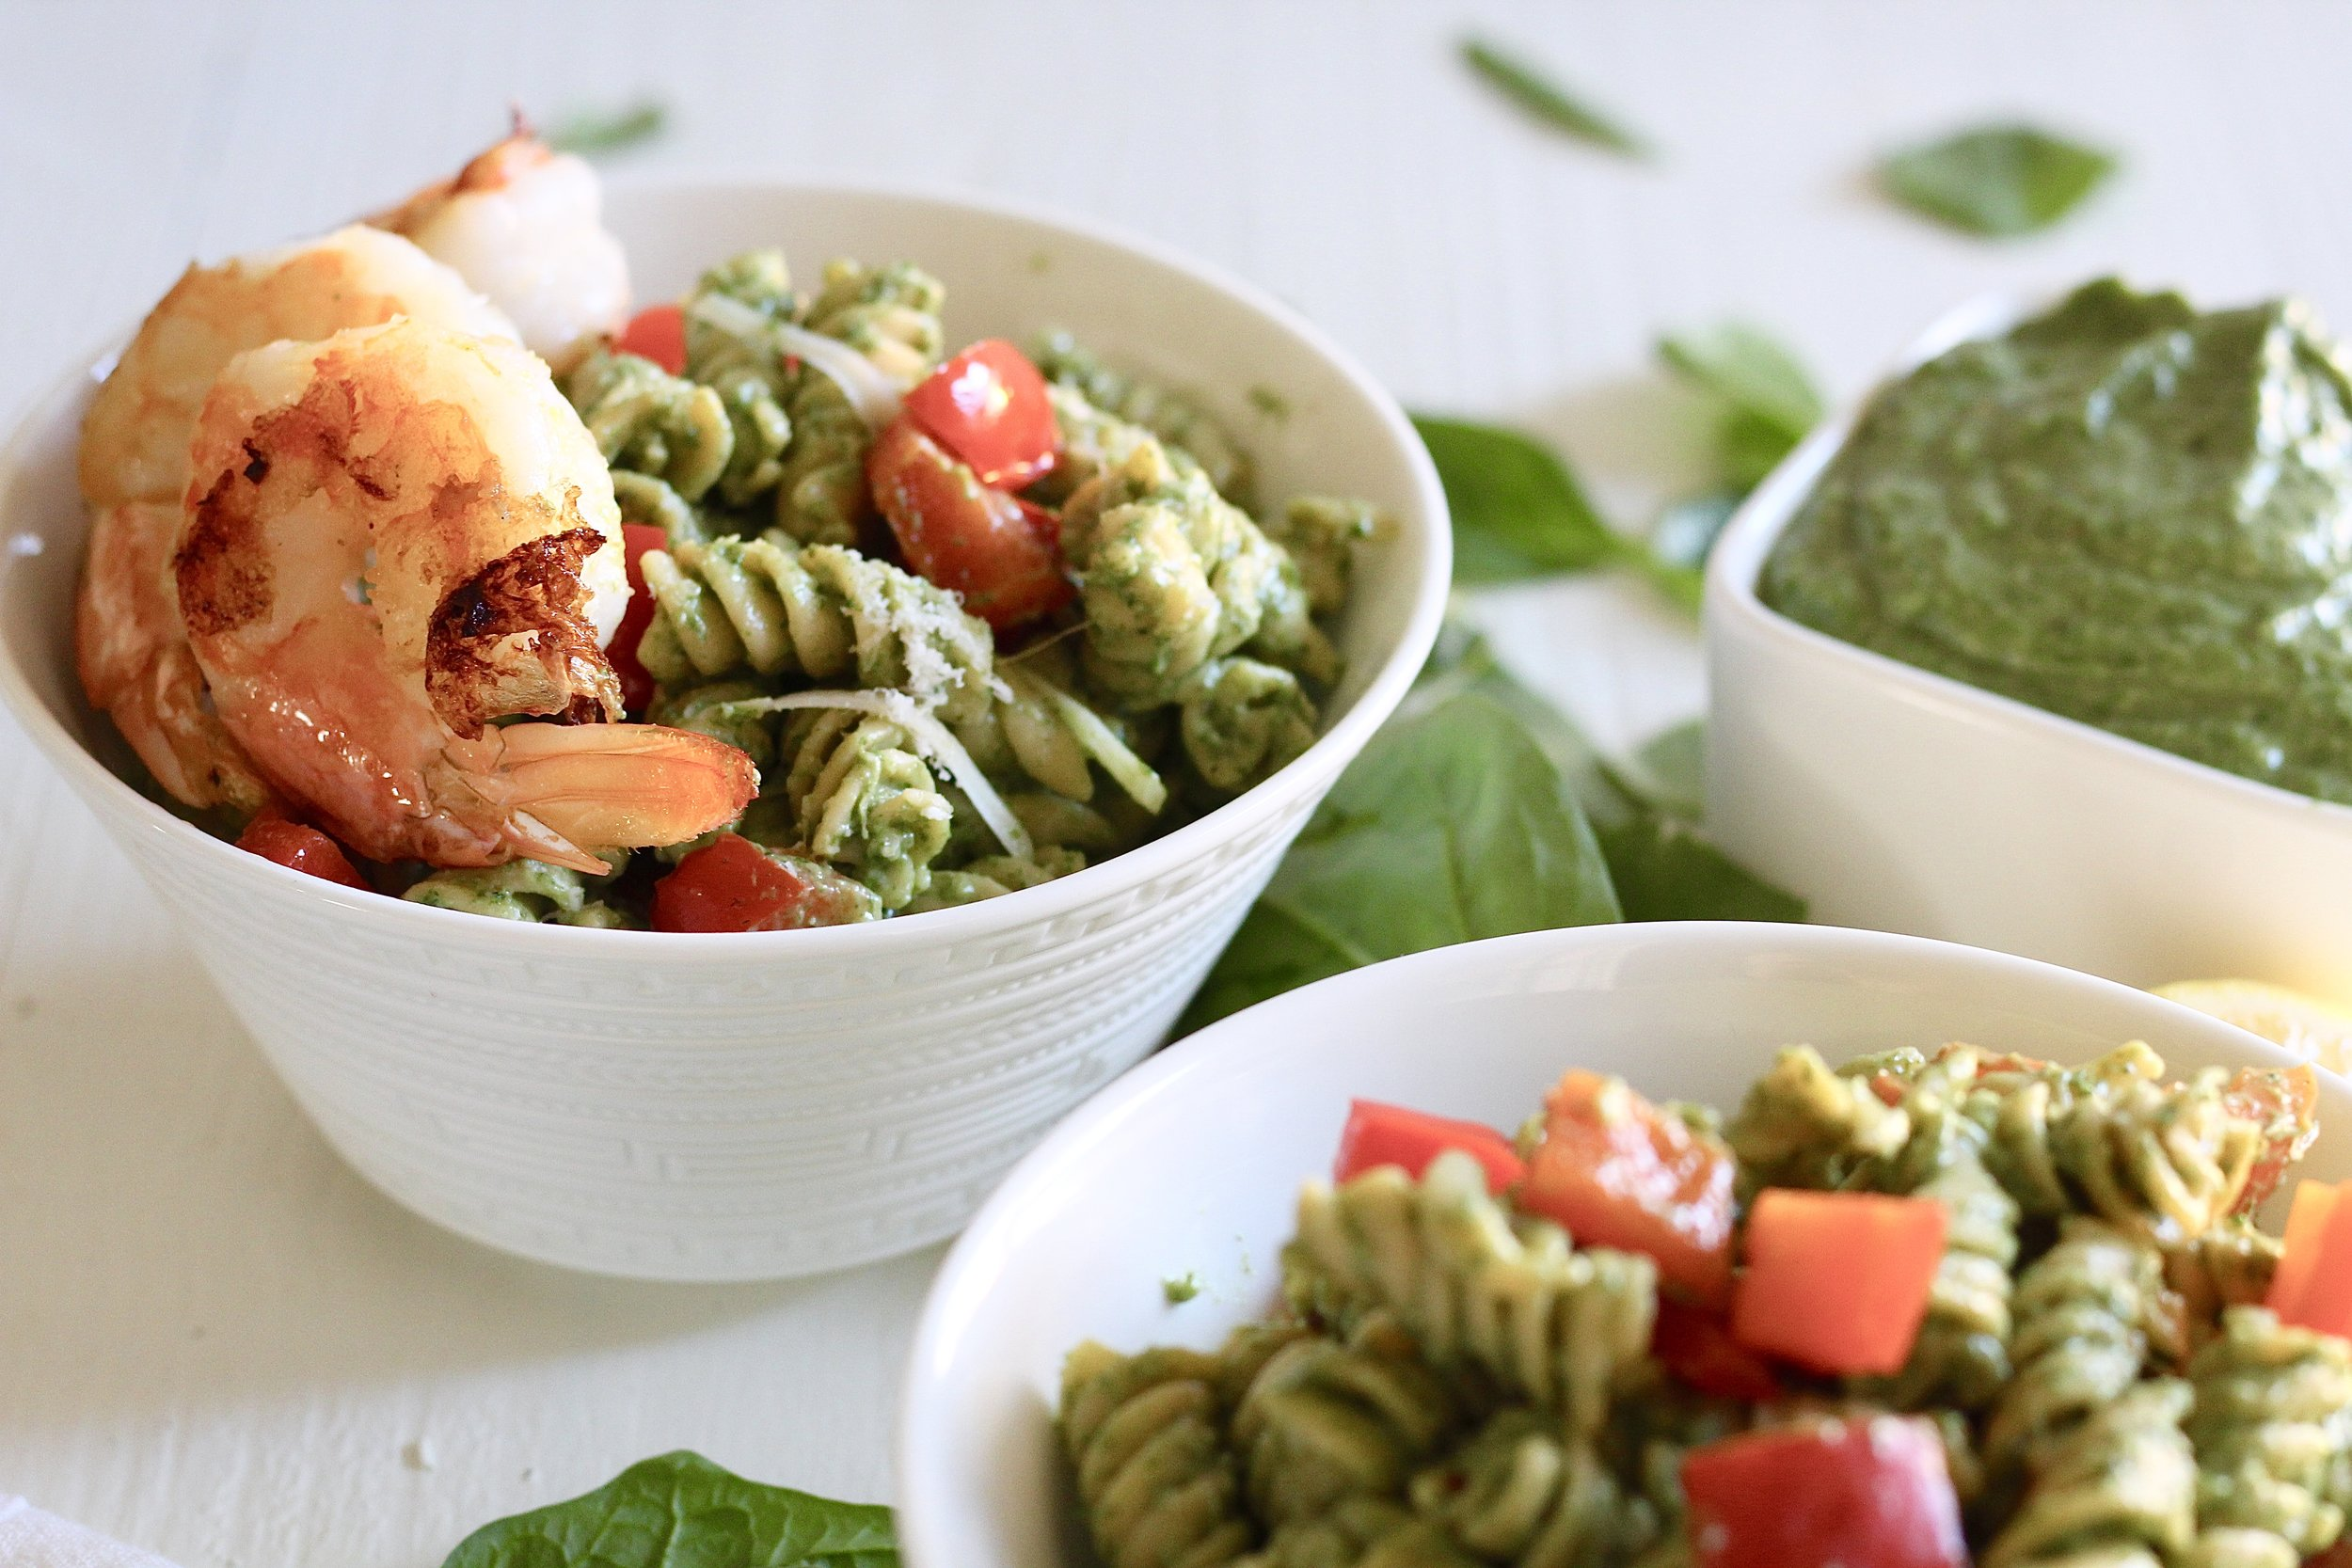 Creamy Spinach Pasta with Shrimp (Gluten Free)